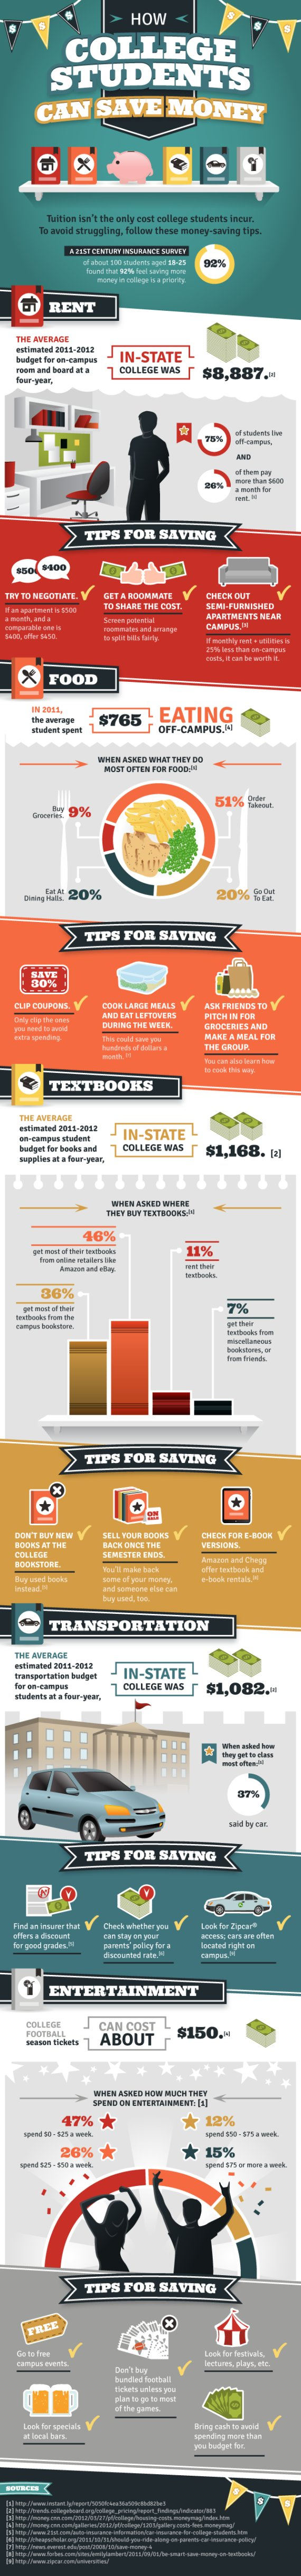 A College Student Guide To Saving Money